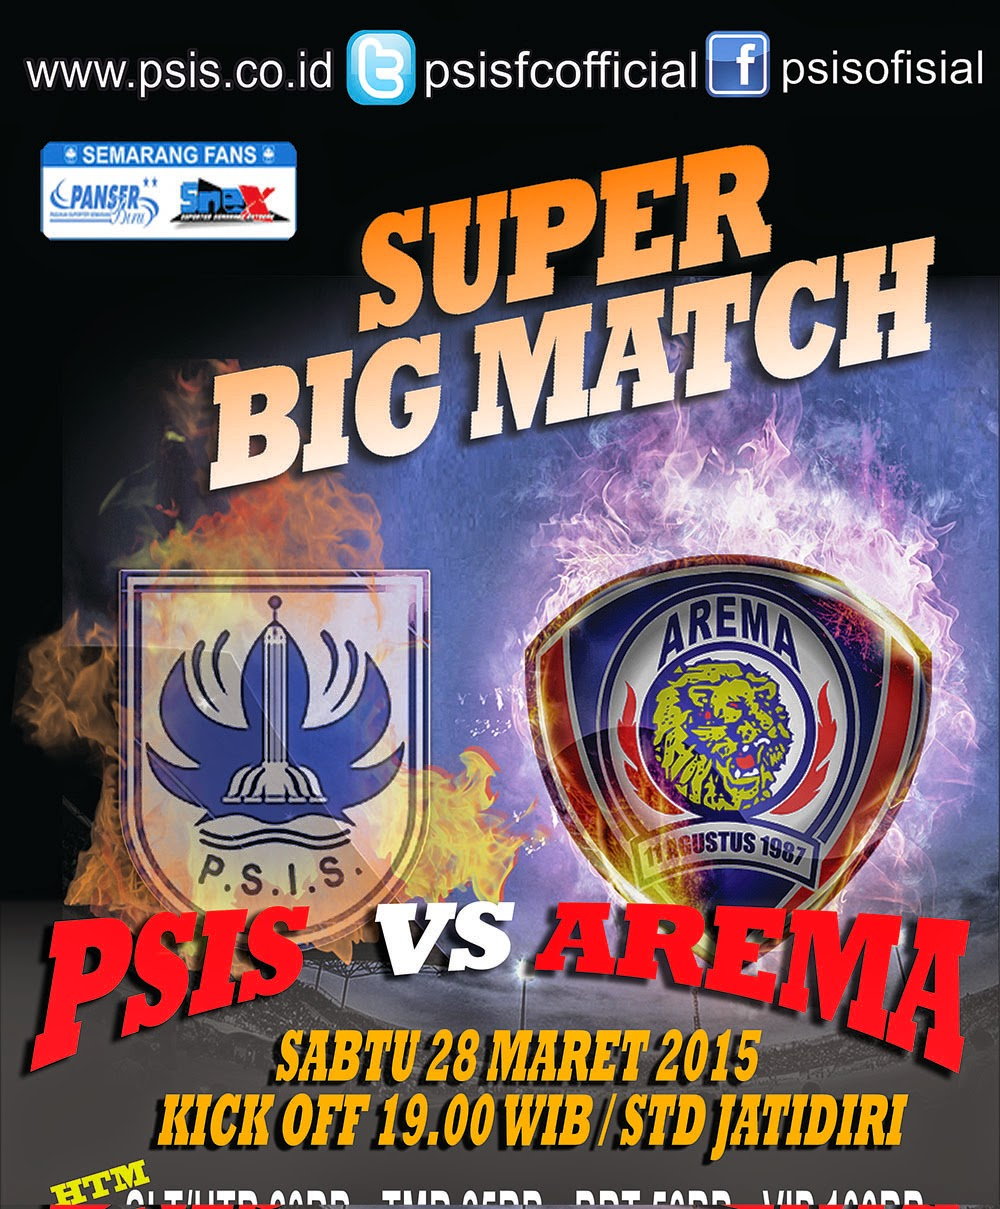 PSIS vs AREMA Friendly Match 2015